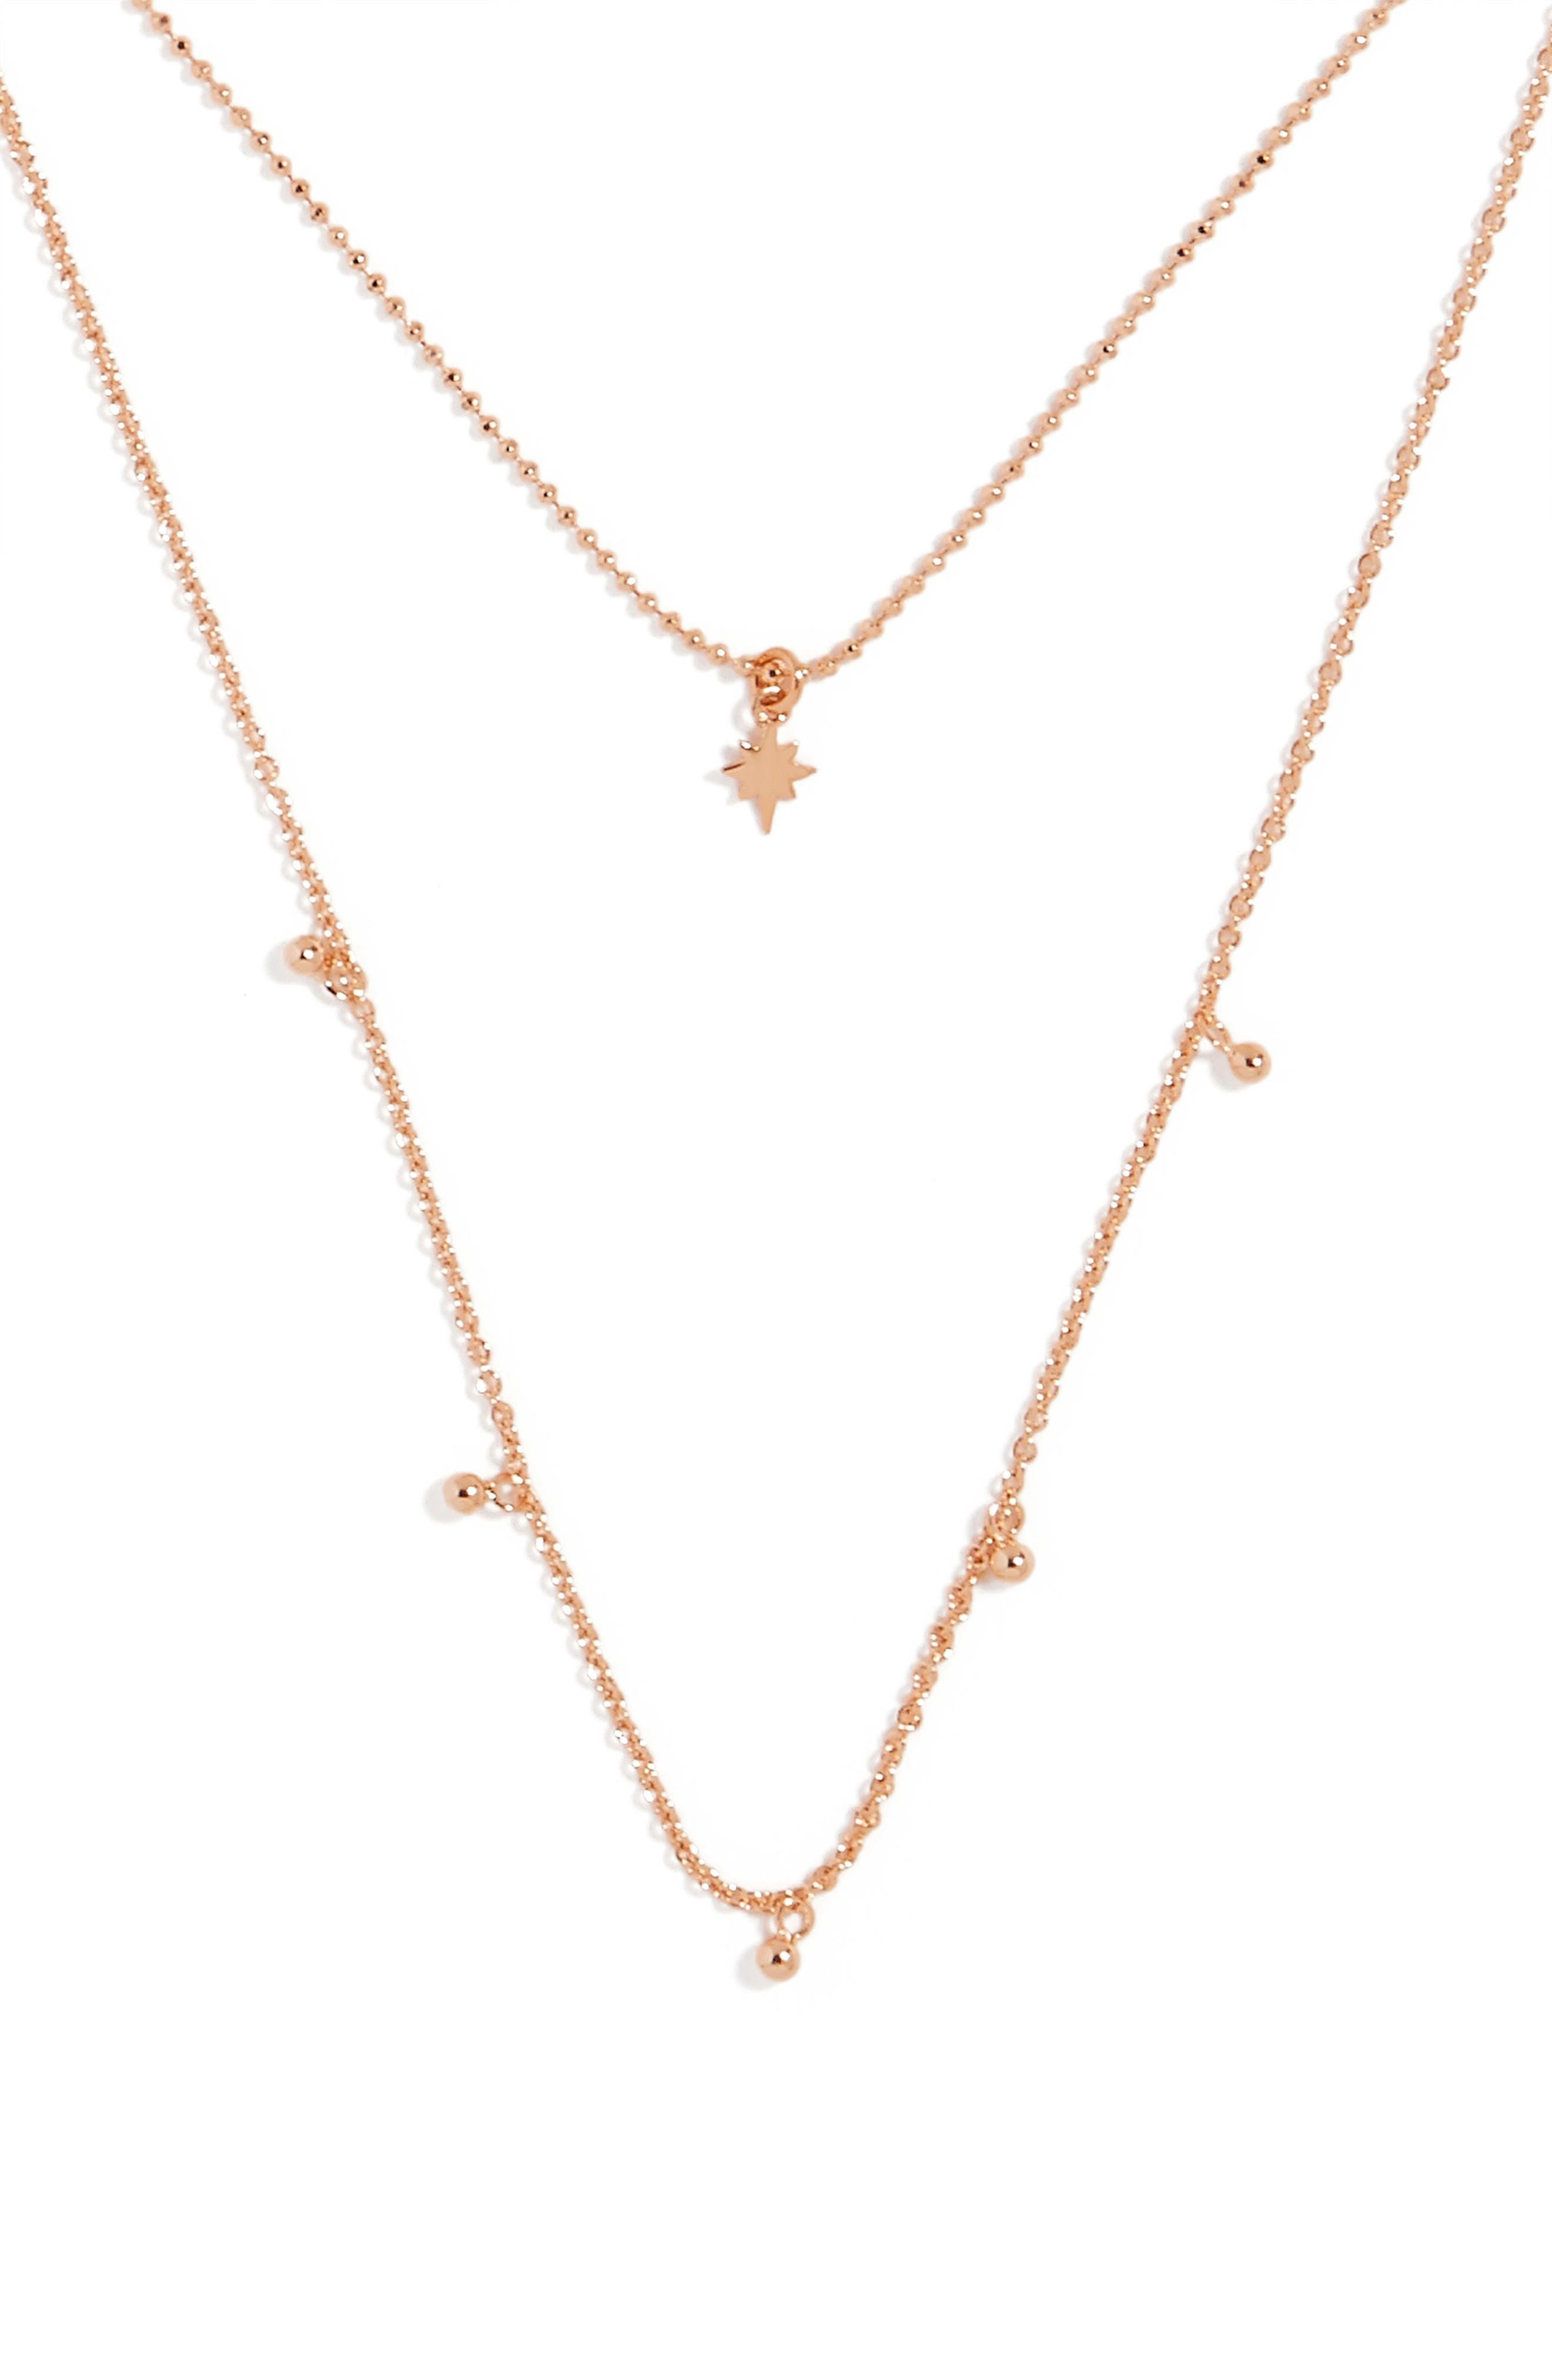 Multistrand Necklace,                             Alternate thumbnail 2, color,                             Rose Gold